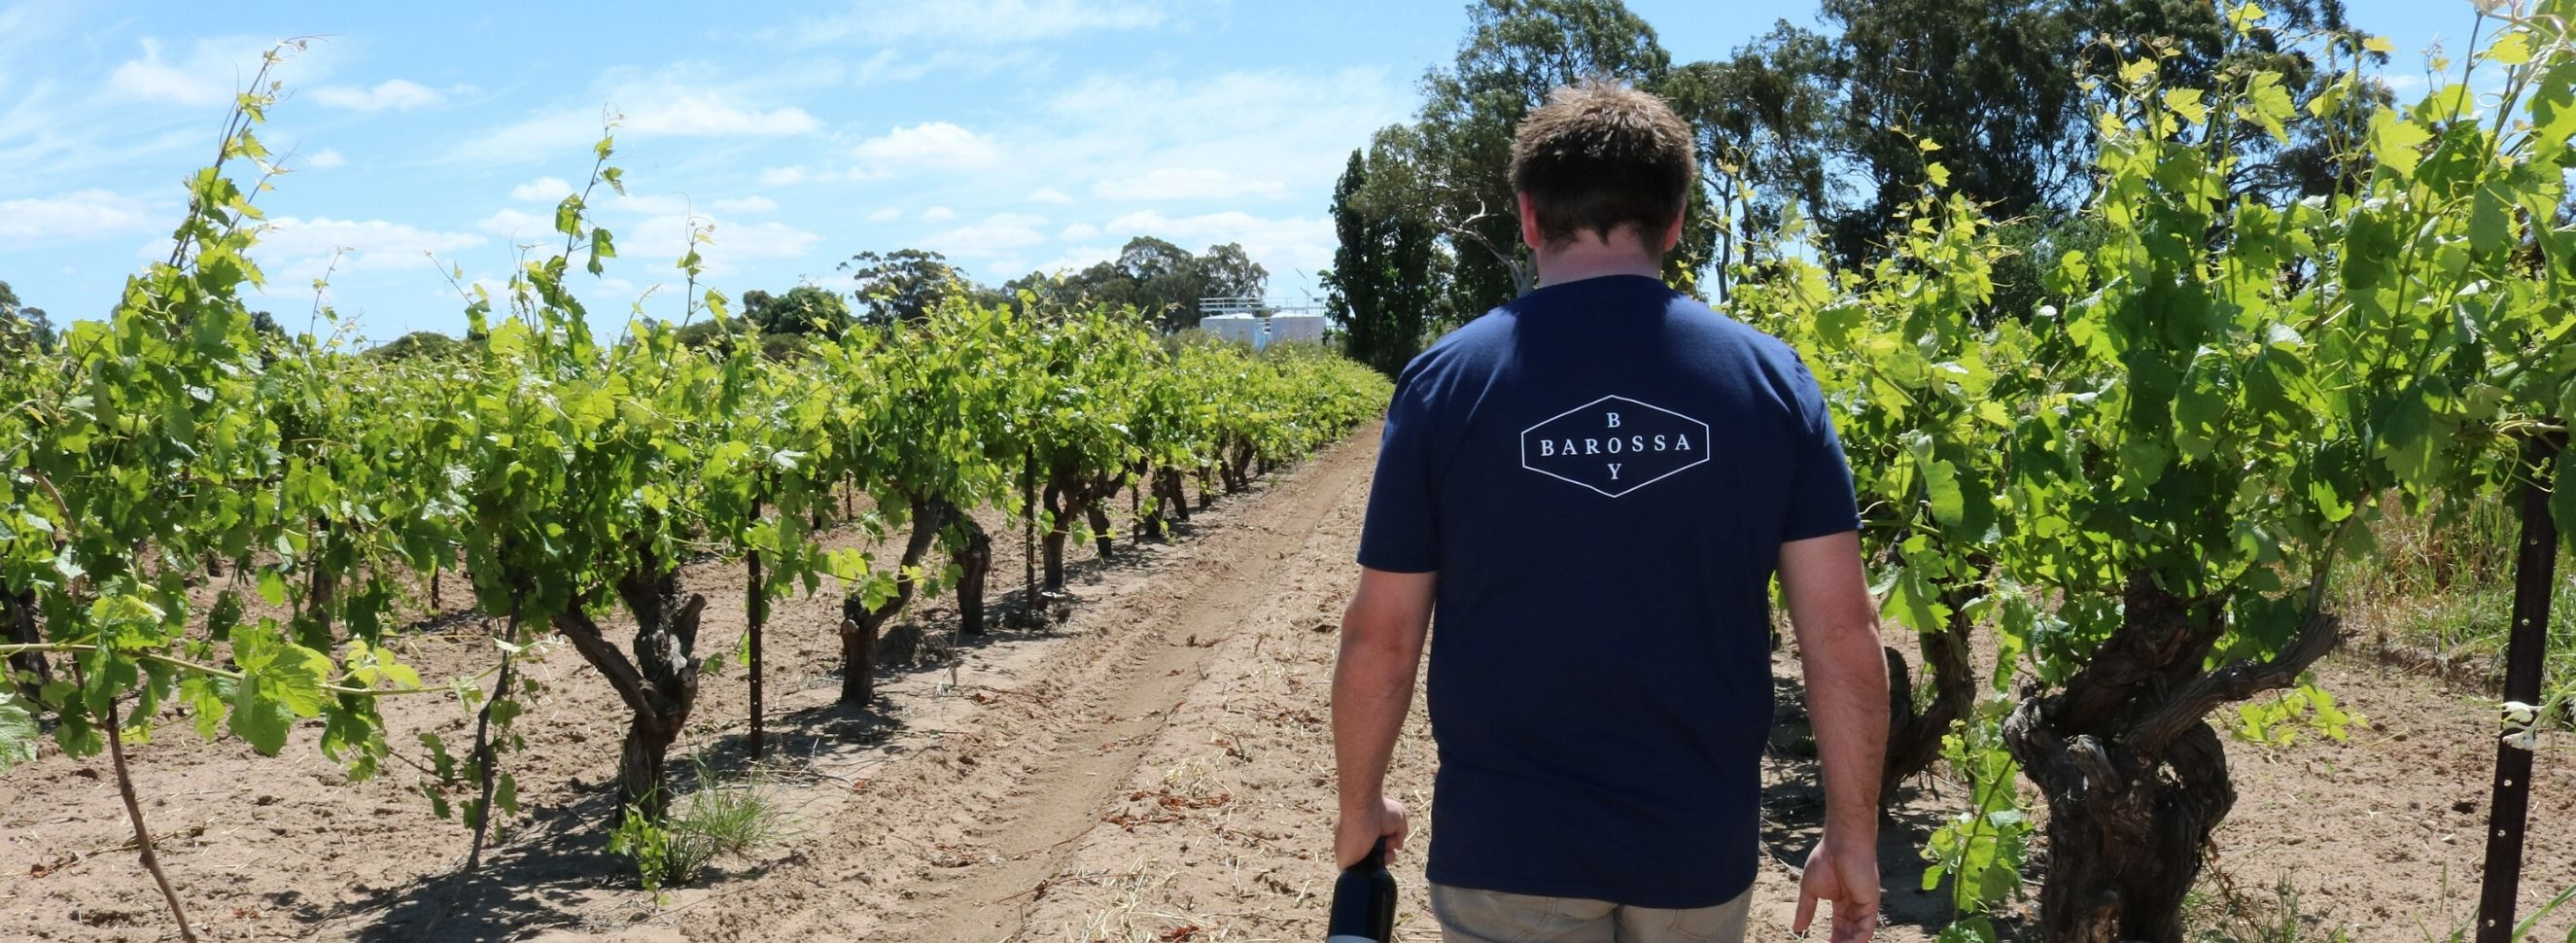 Barossa Boy: Paying Tribute to the Vines and the Generations of Barossa Winemakers